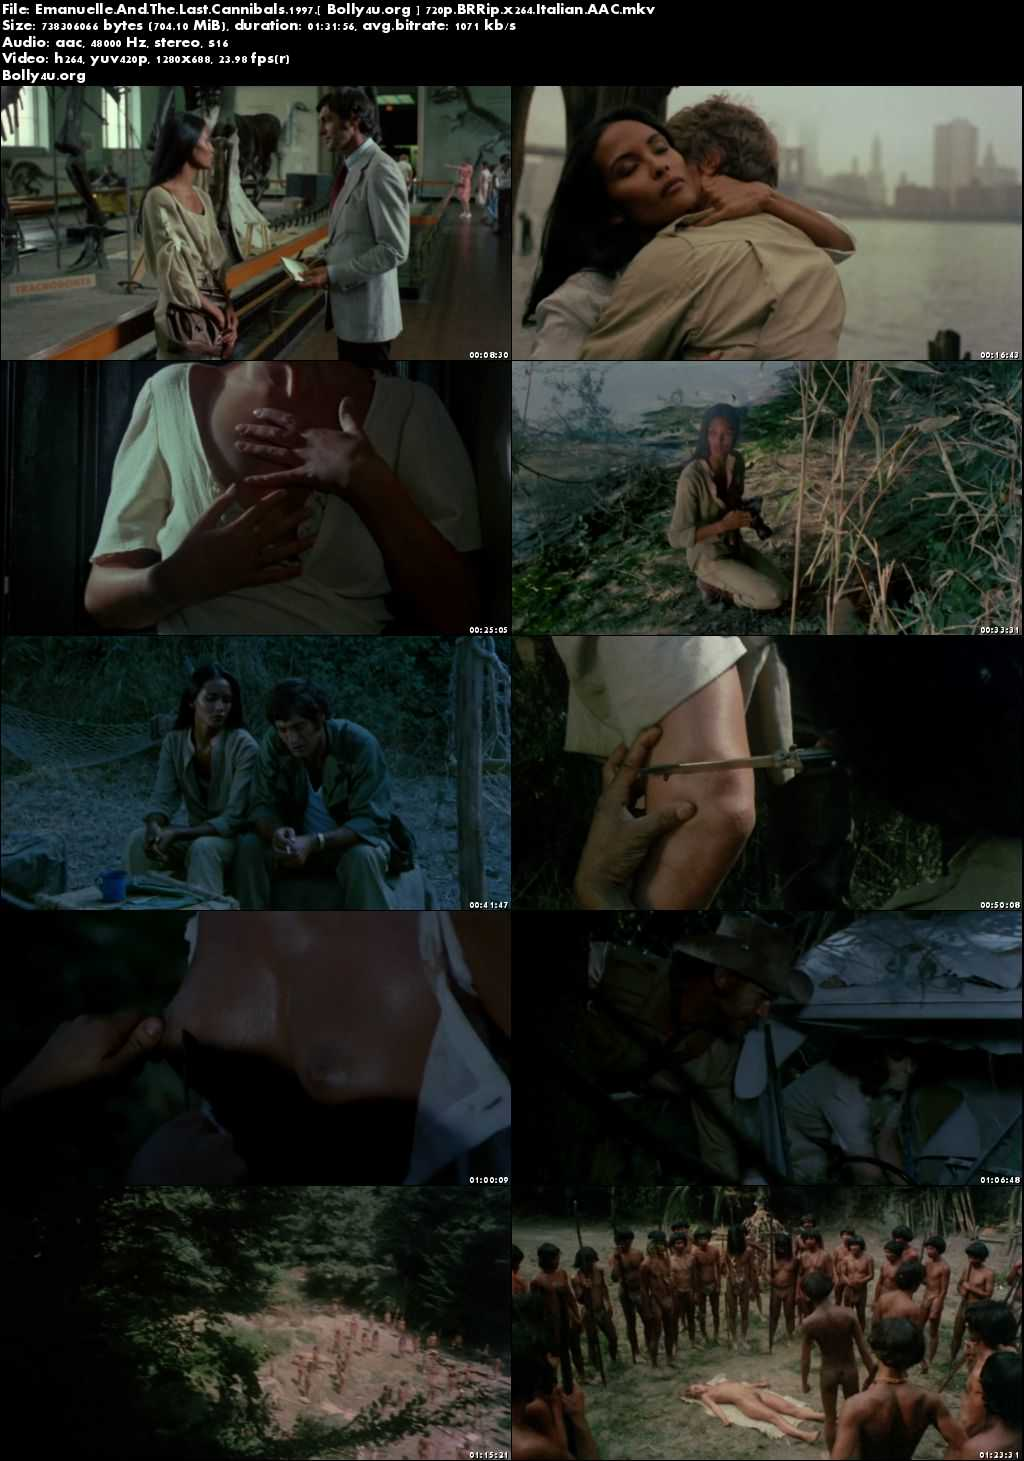 Emanuelle And The Last Cannibals 1997 BRRip 700MB Italian 720p ESub Download